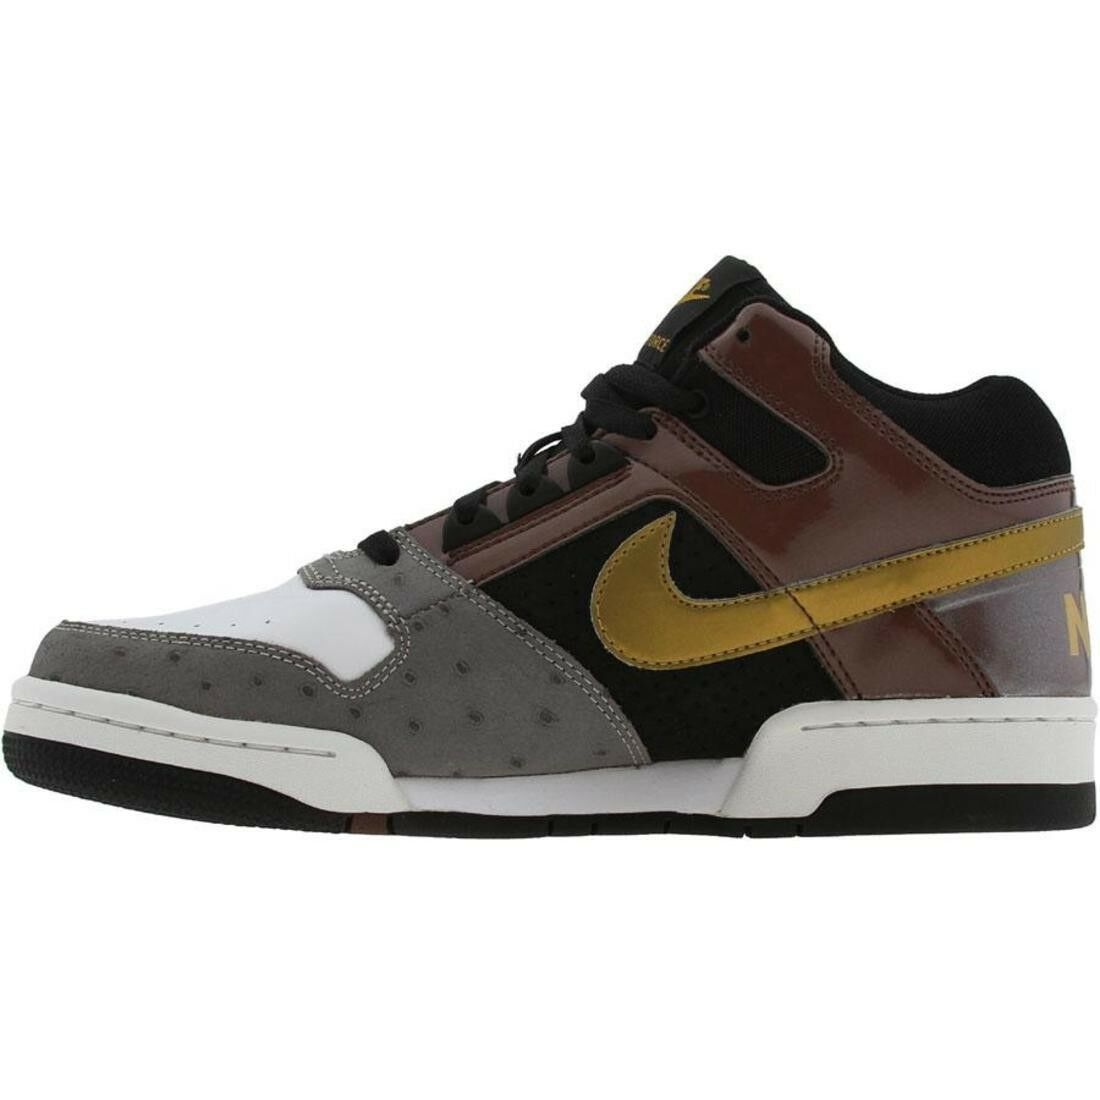 312031-271 Nike Delta Force 3 4 Deluxe Roble Oscuro oro Metálico Negro